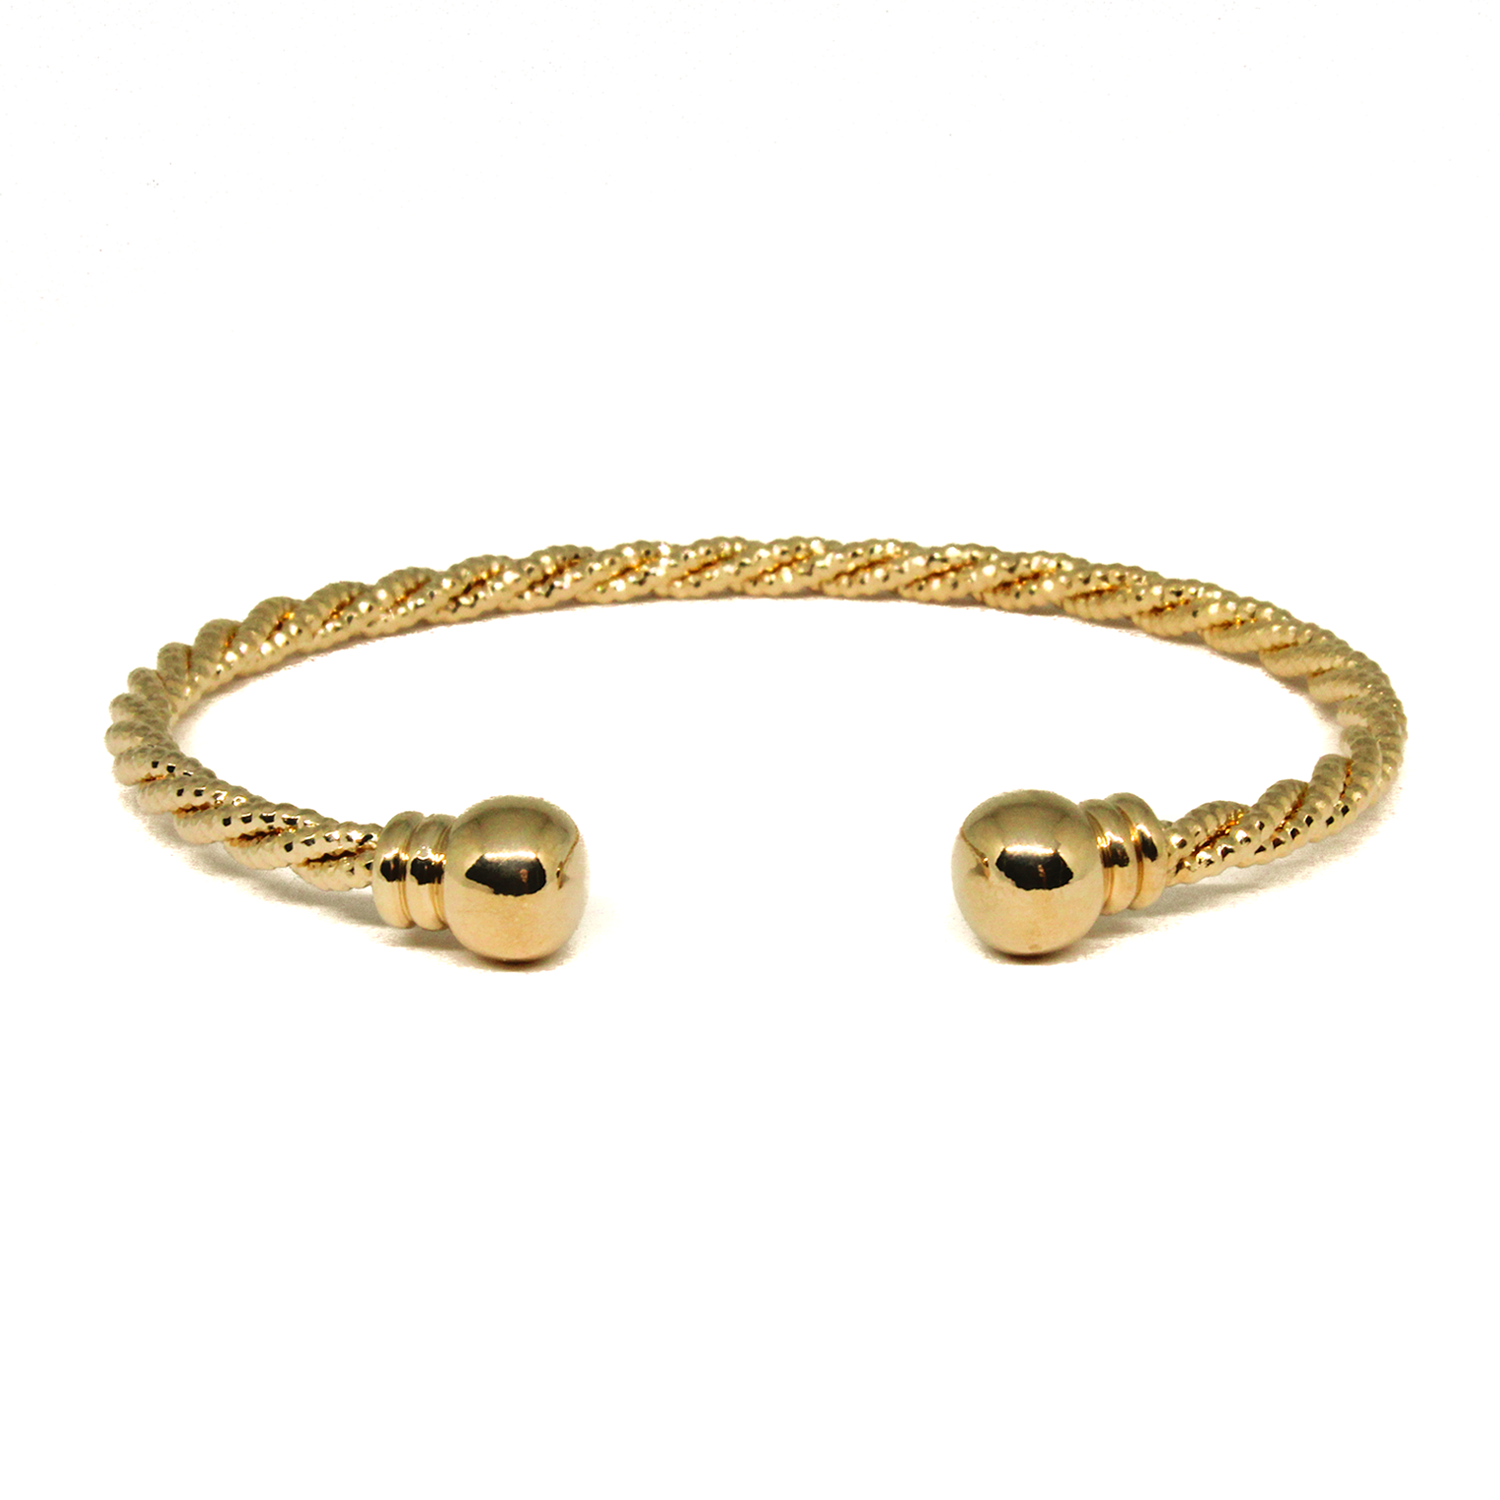 Revi Studios - 18K gold-plated Jewelry. Open twisted Bracelet with beads at the end. (Revi Studios - 18K aranyozott ékszer)